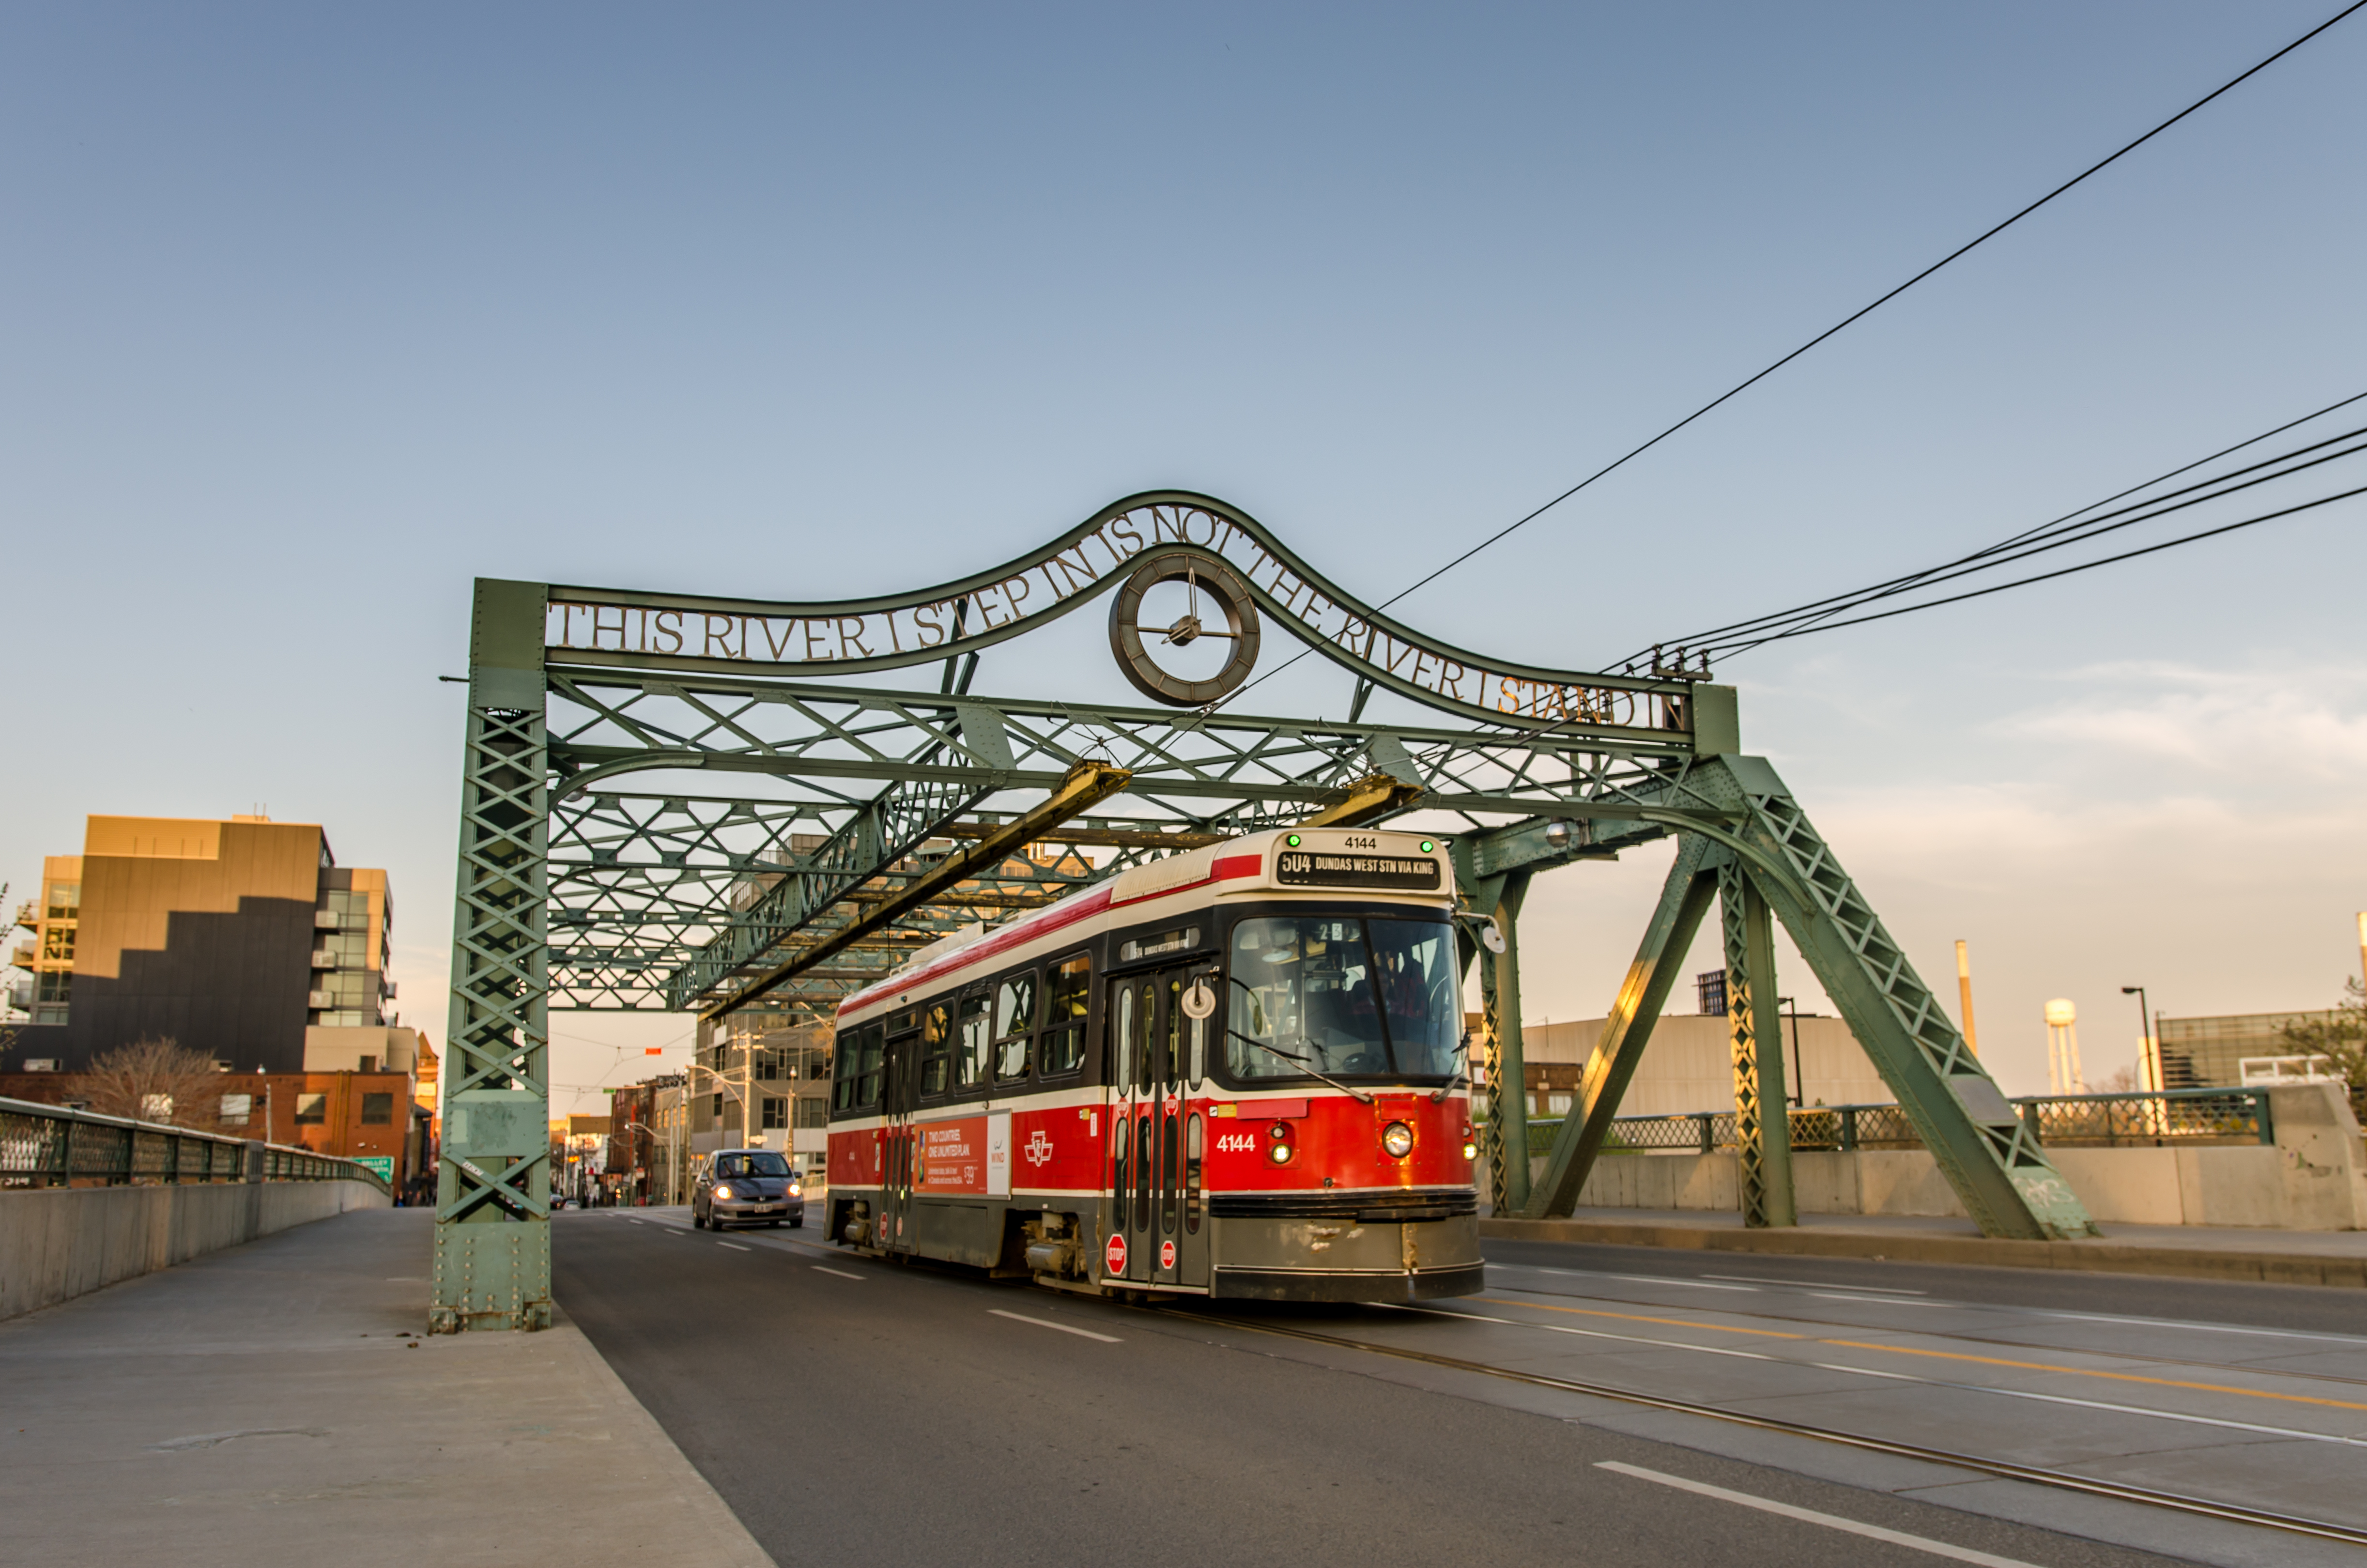 Toronto streetcars to be retired